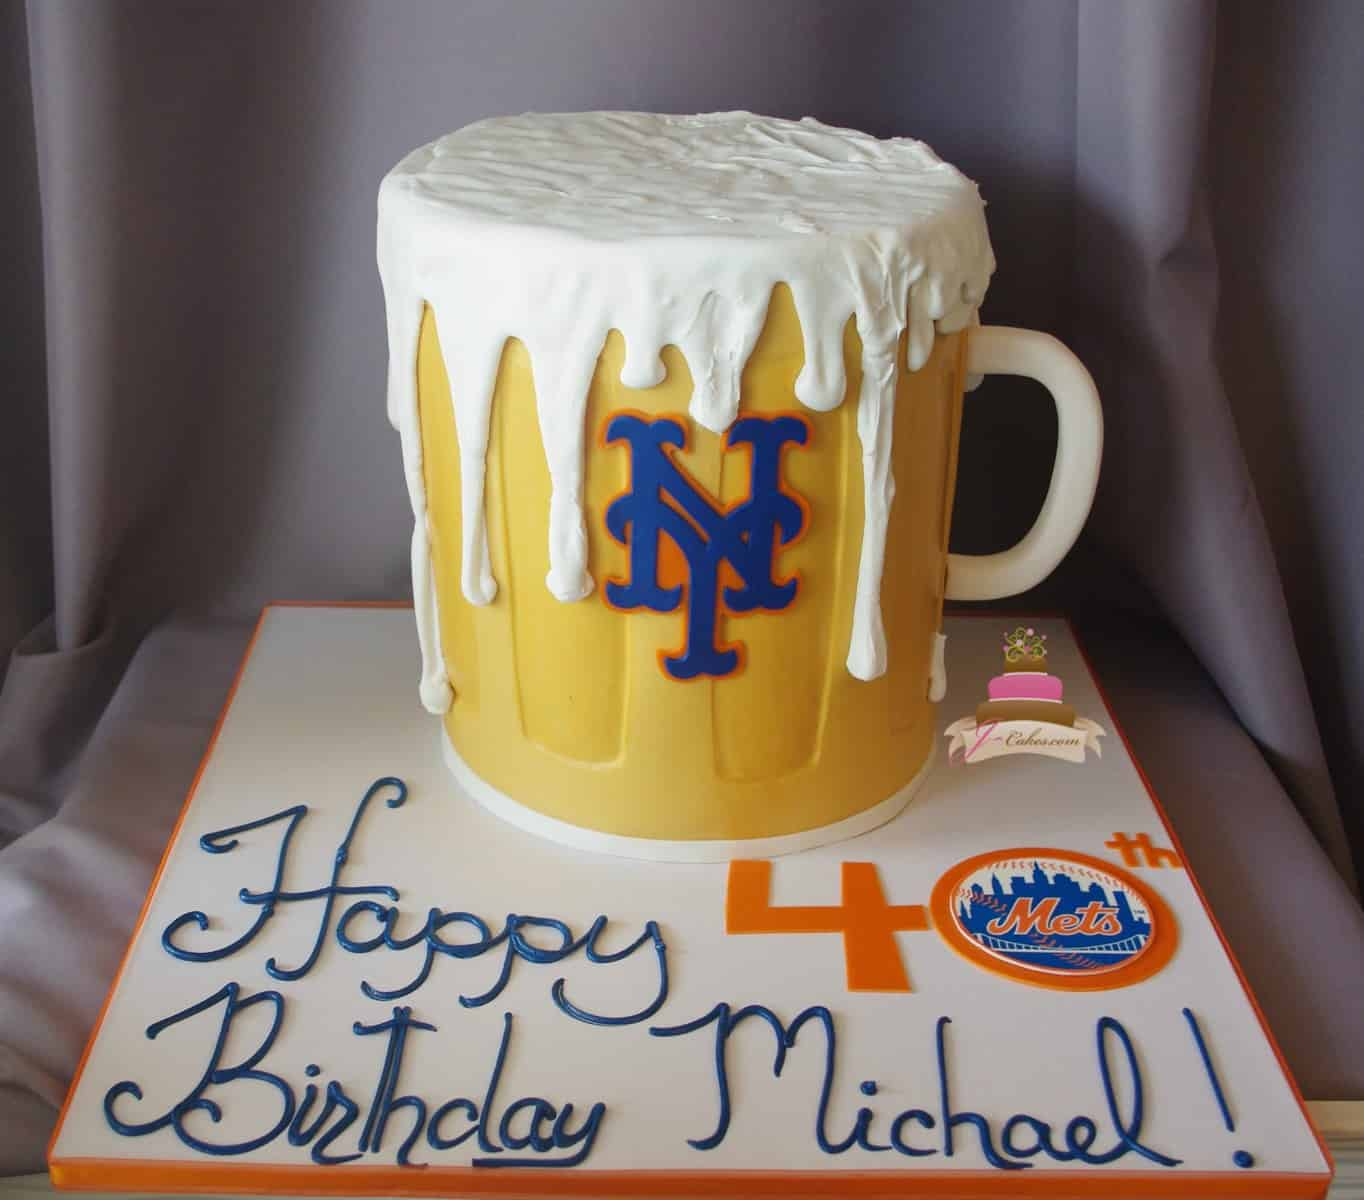 175 Beer Mug Birthday Cake